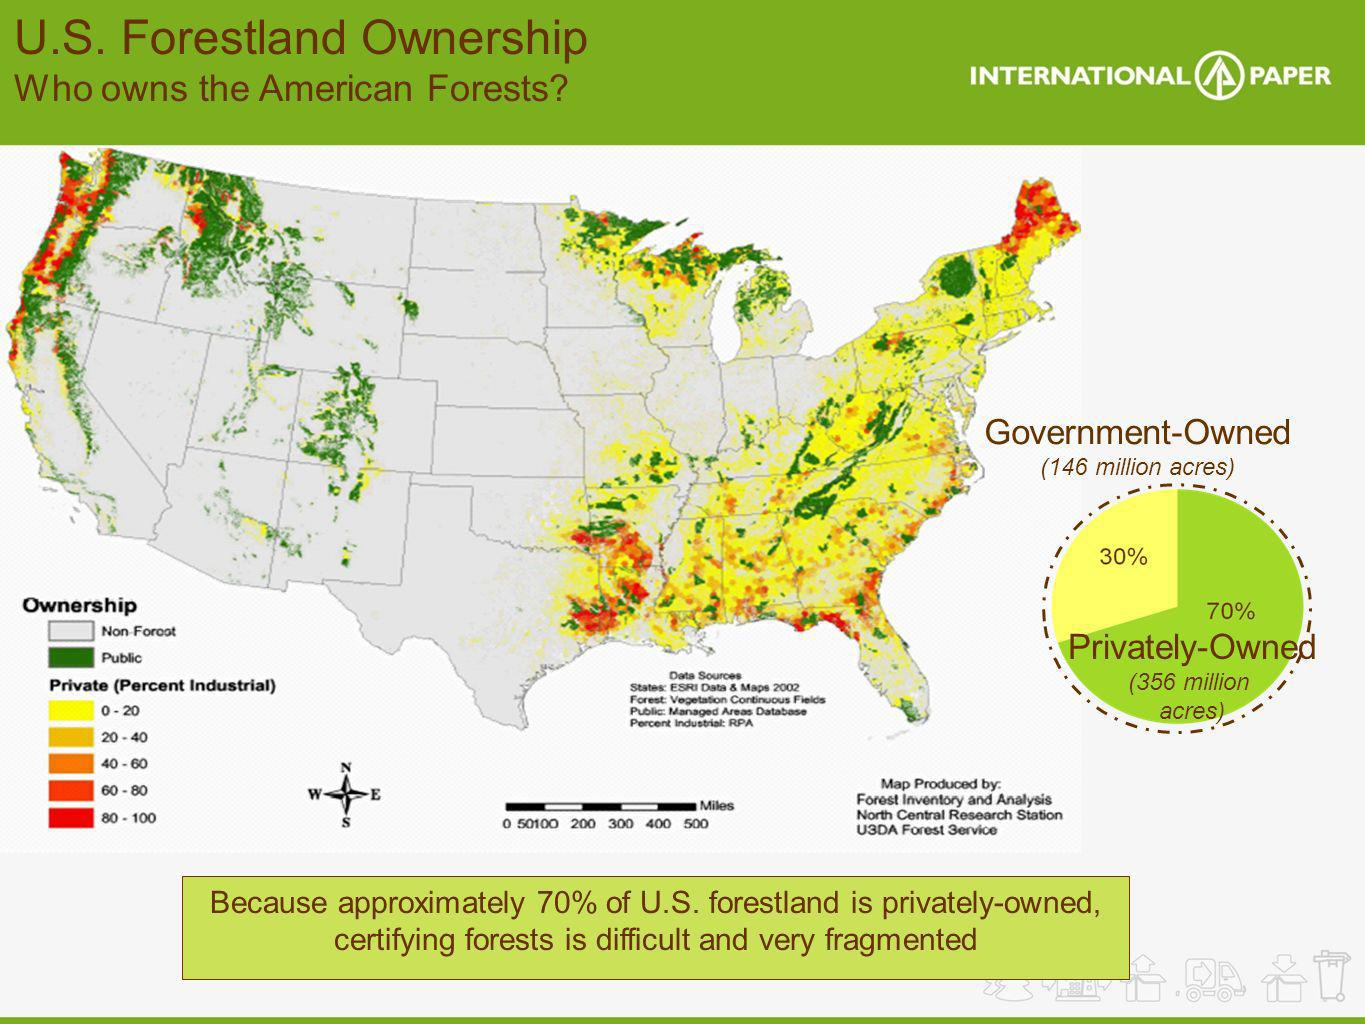 U.S. Forestland Ownership Who owns the American Forests? Because approximately 70% of U.S. forestland is privately-owned, certifying forests is diffic